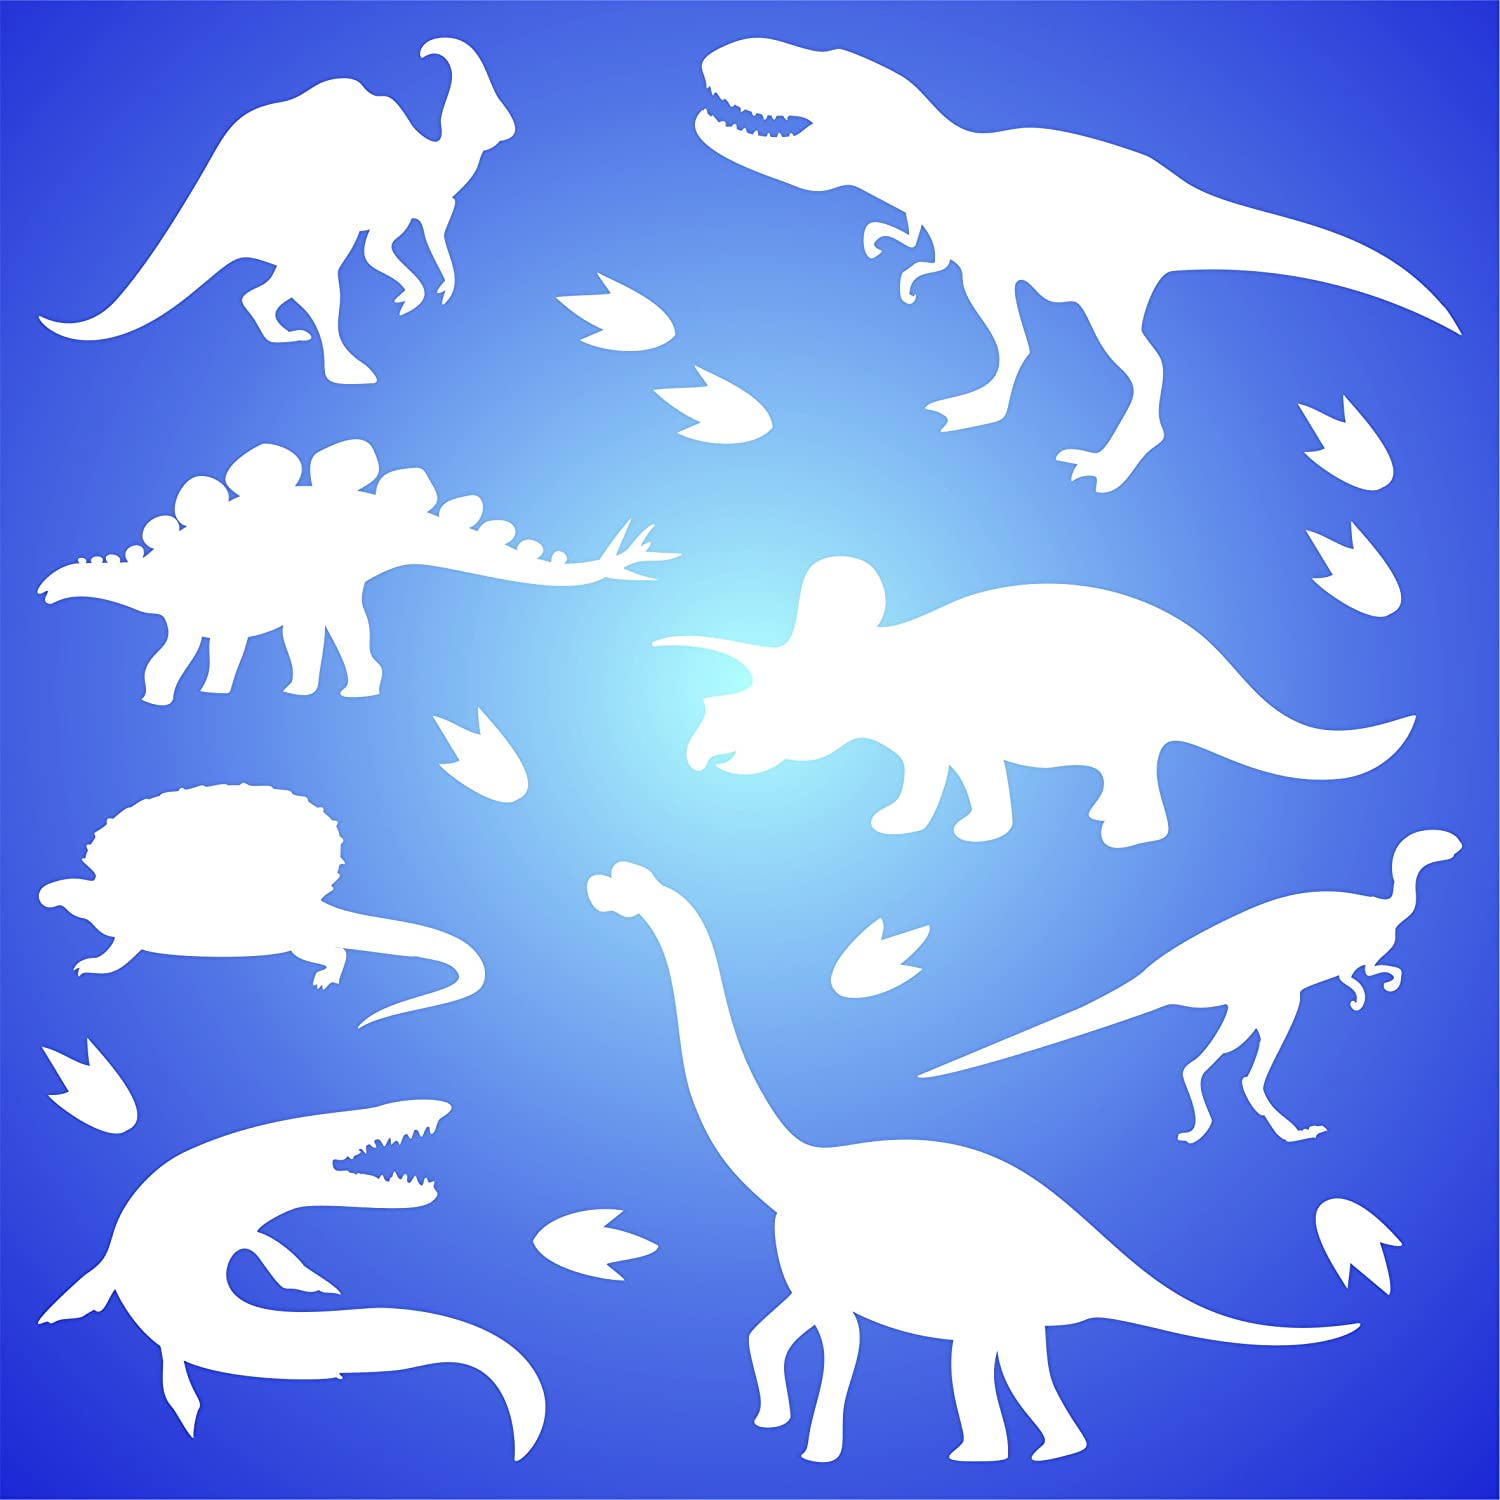 Dinosaur Silhouette Stencil 16 5cm X 16 5cm M Reusable Kids Animal Jurassic Period Stencil Template Amazon Co Uk Kitchen Home